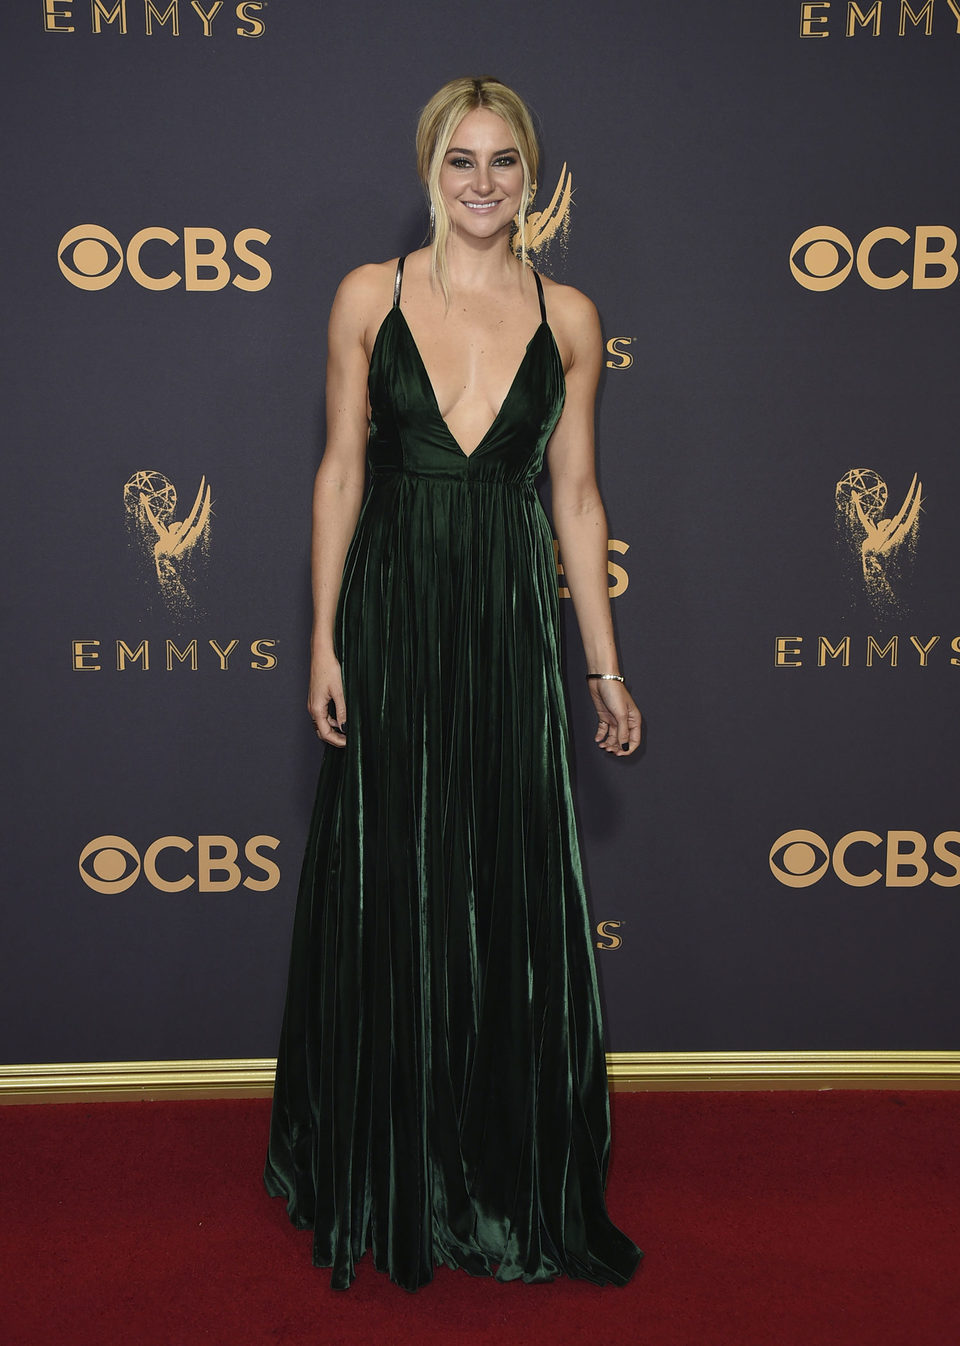 Shailene Woodley at the Emmy 2017 red carpet